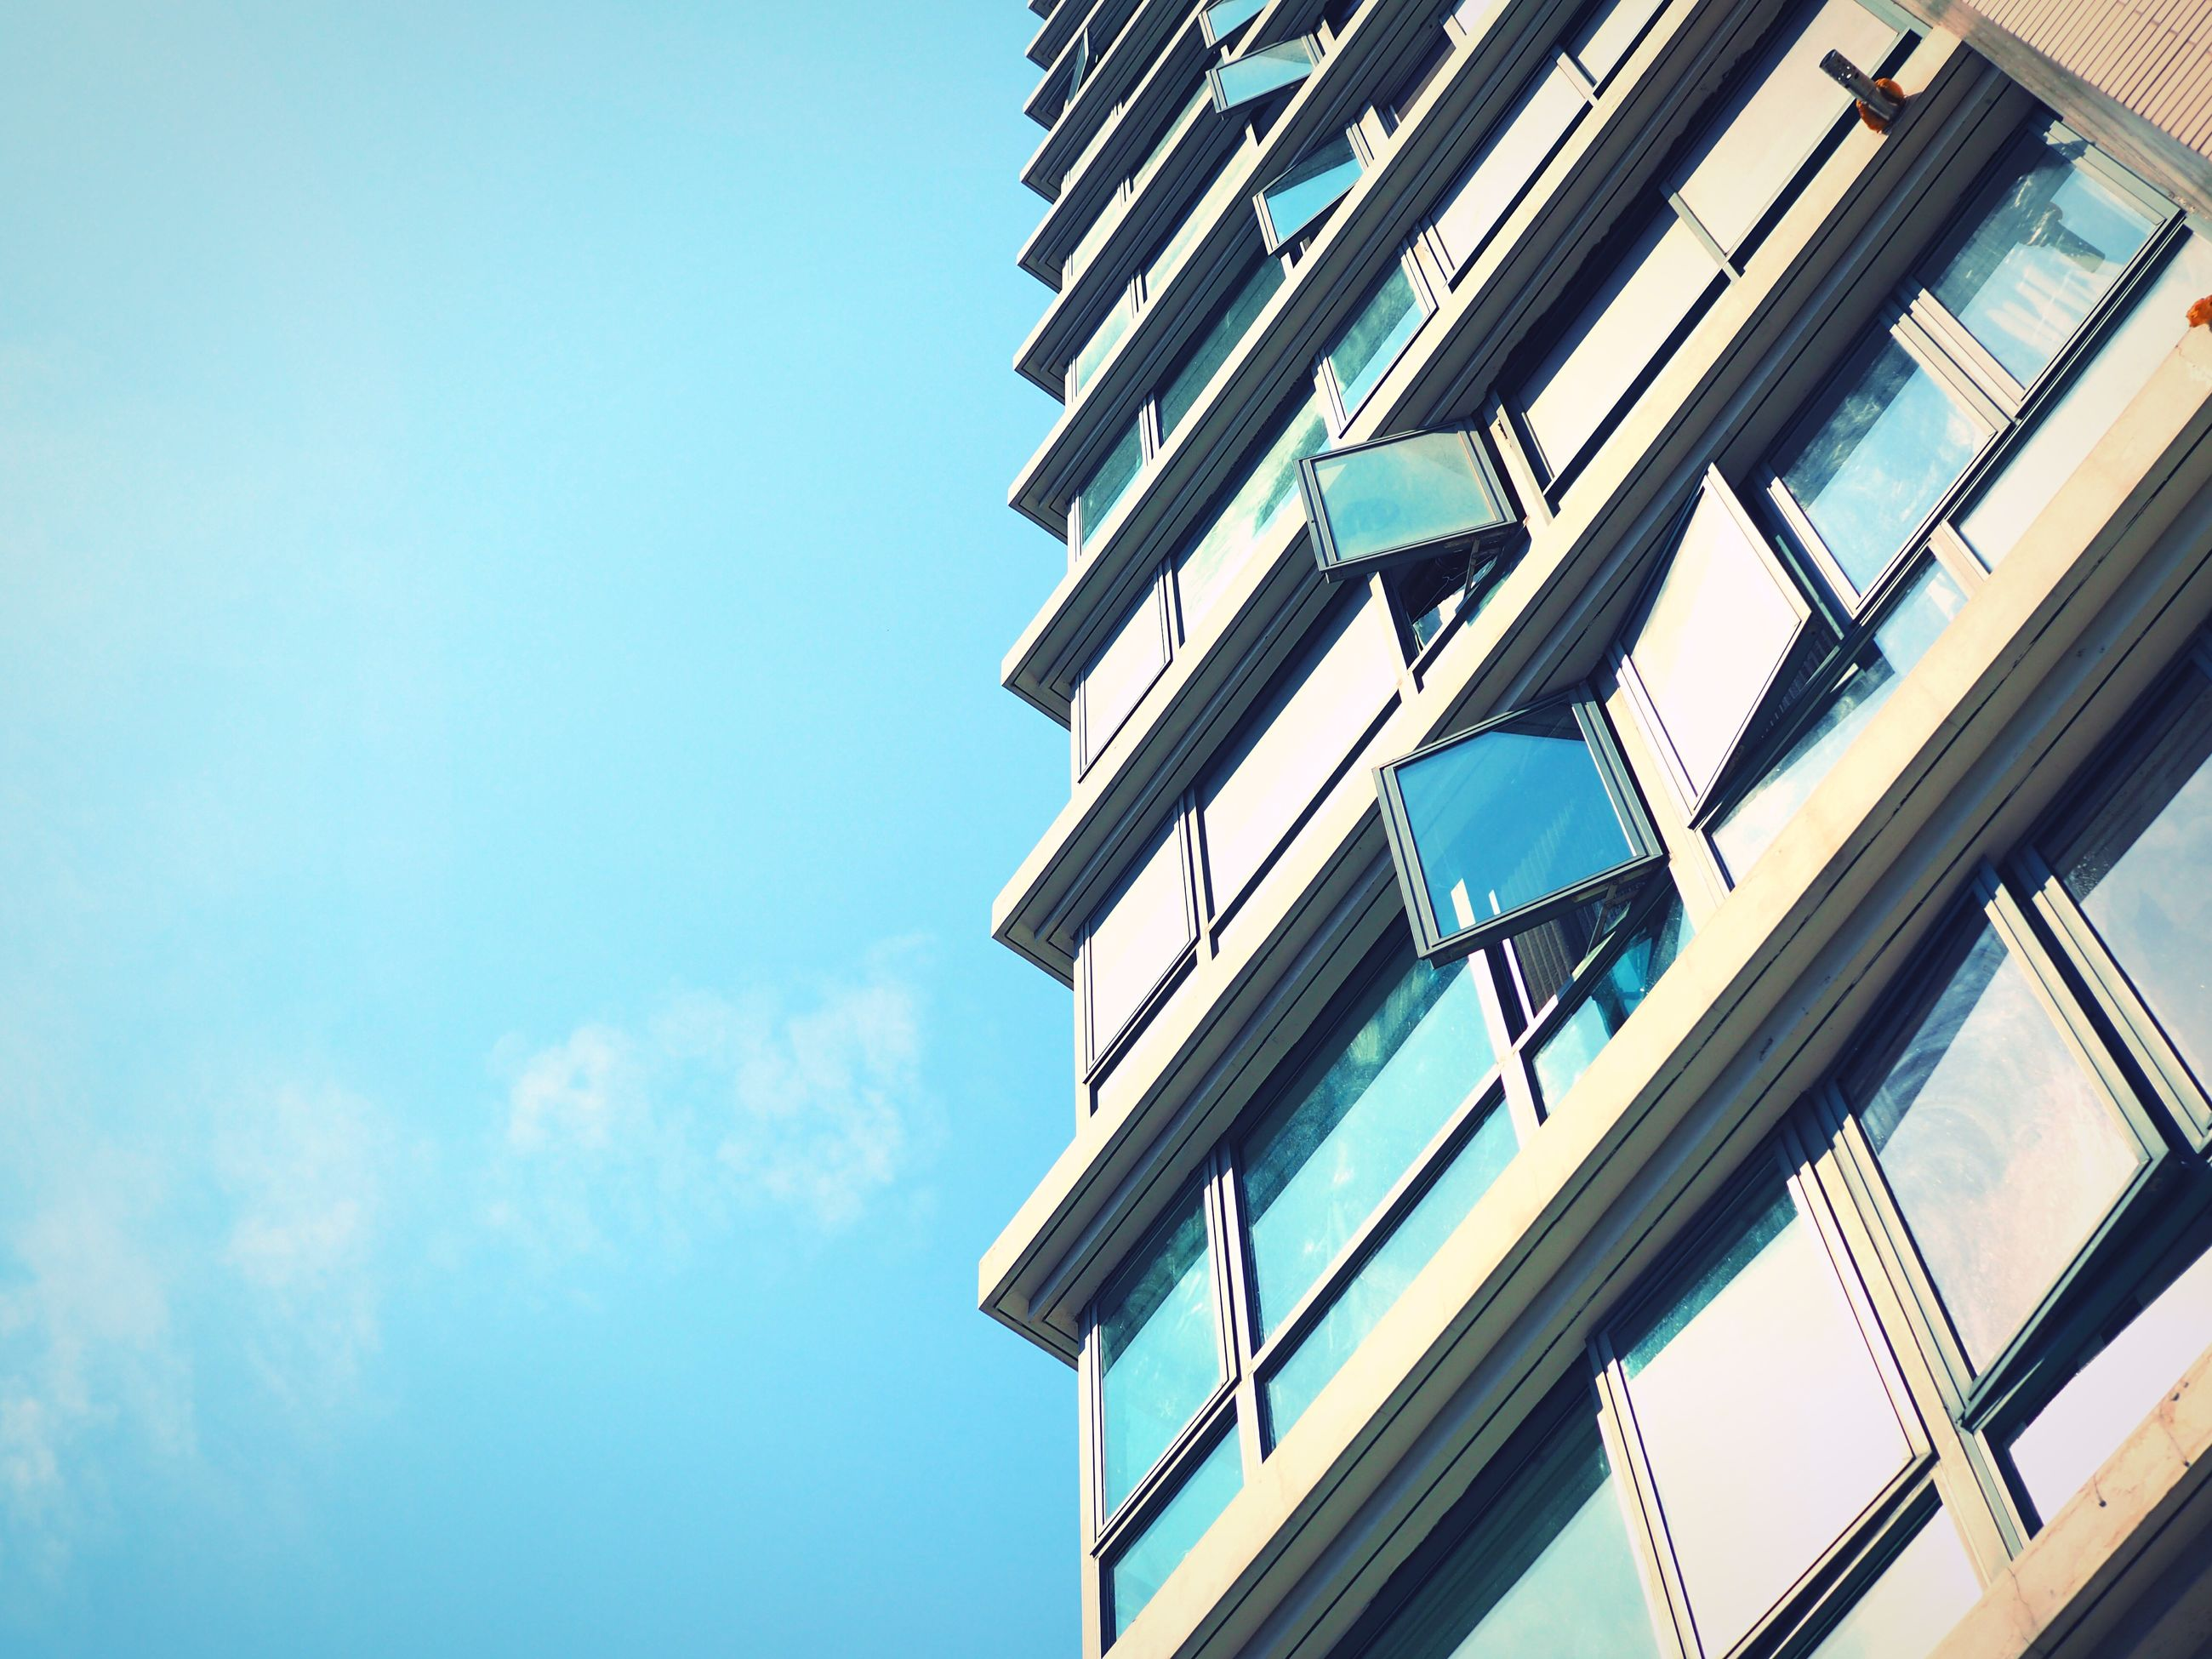 architecture, low angle view, built structure, building exterior, building, clear sky, window, city, blue, sky, residential building, tower, day, residential structure, tall - high, office building, directly below, outdoors, modern, balcony